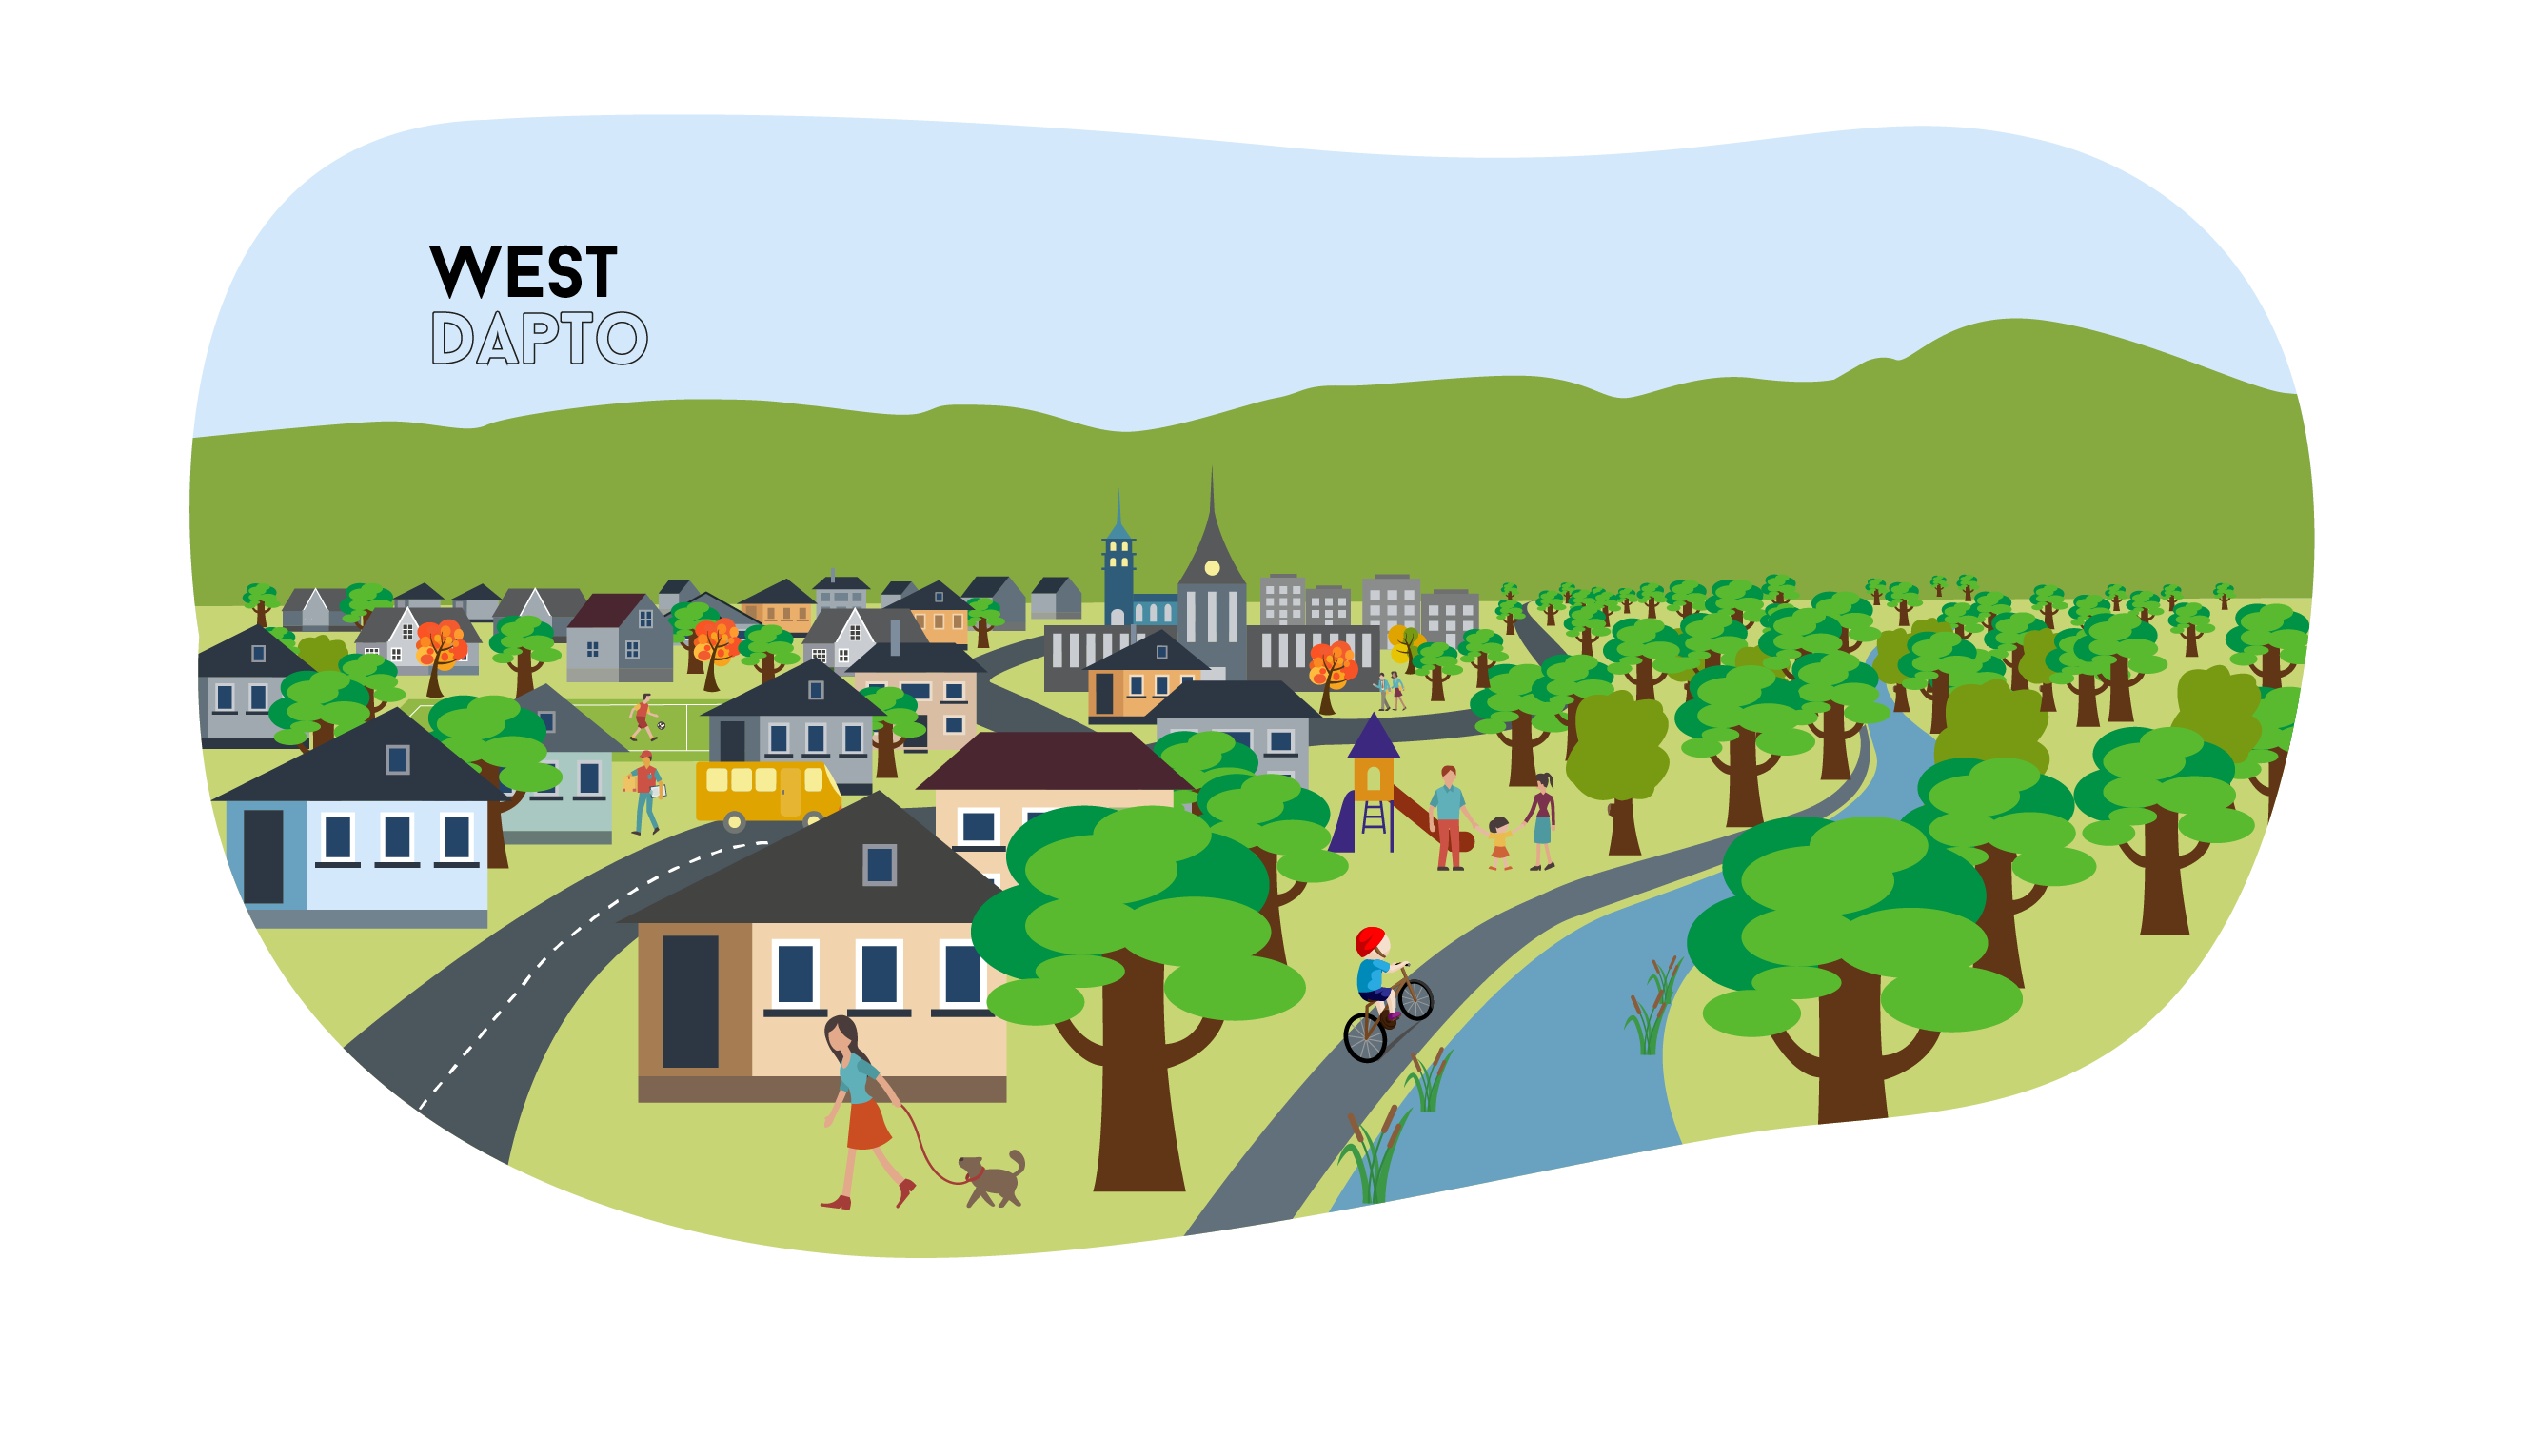 Planning clipart urban planner. For west dapto the